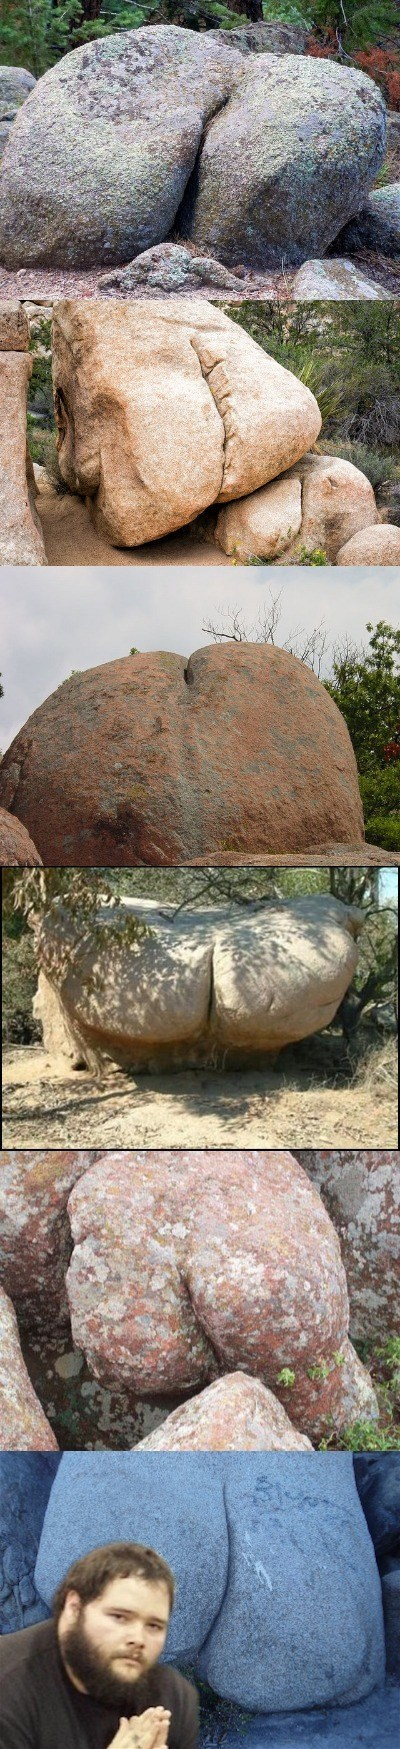 butts,rocks,magic the gathering buttcracks